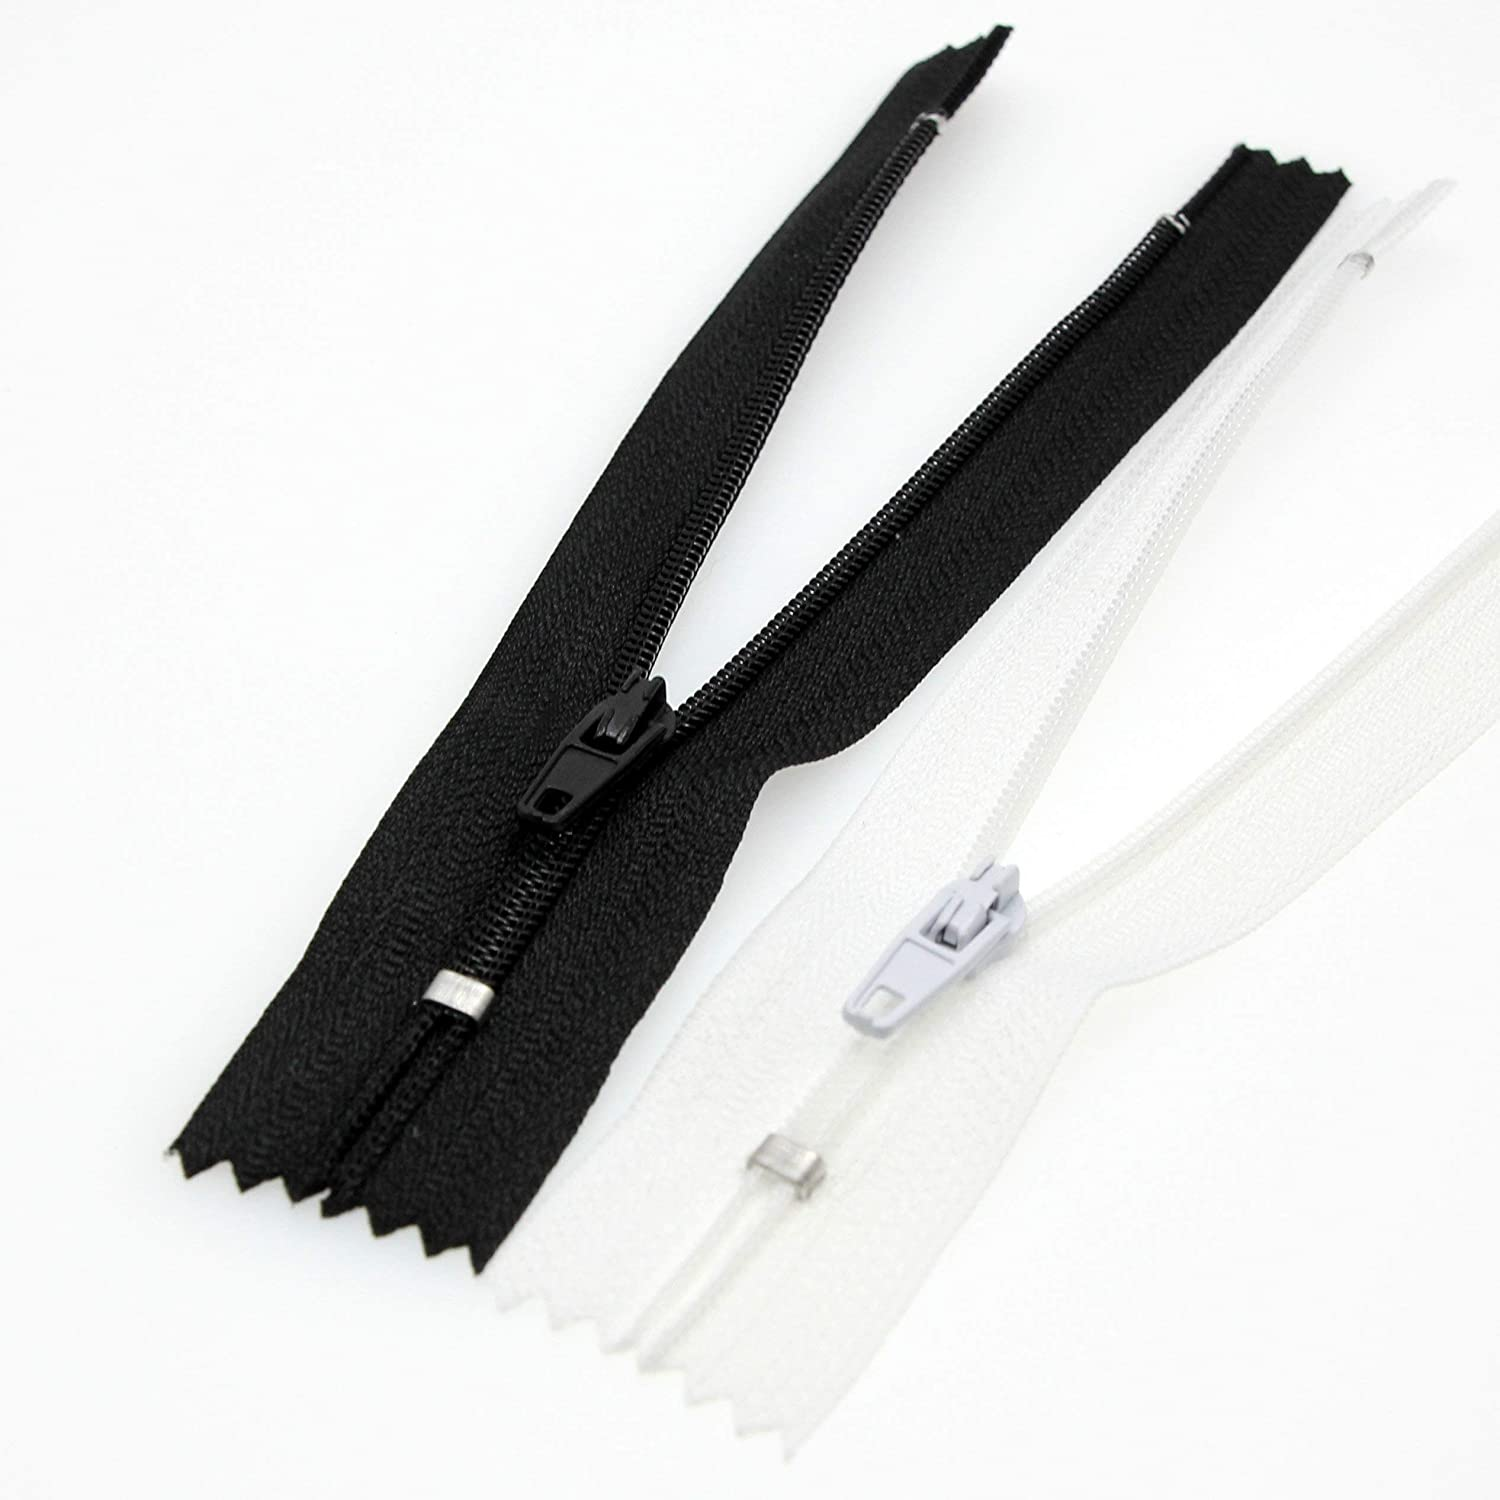 12 Nylon Coil Zippers,3# Zipper for DIY Tailor Sewing Craft 10 PCS//Pack Leekayer Black/&White,12 inch